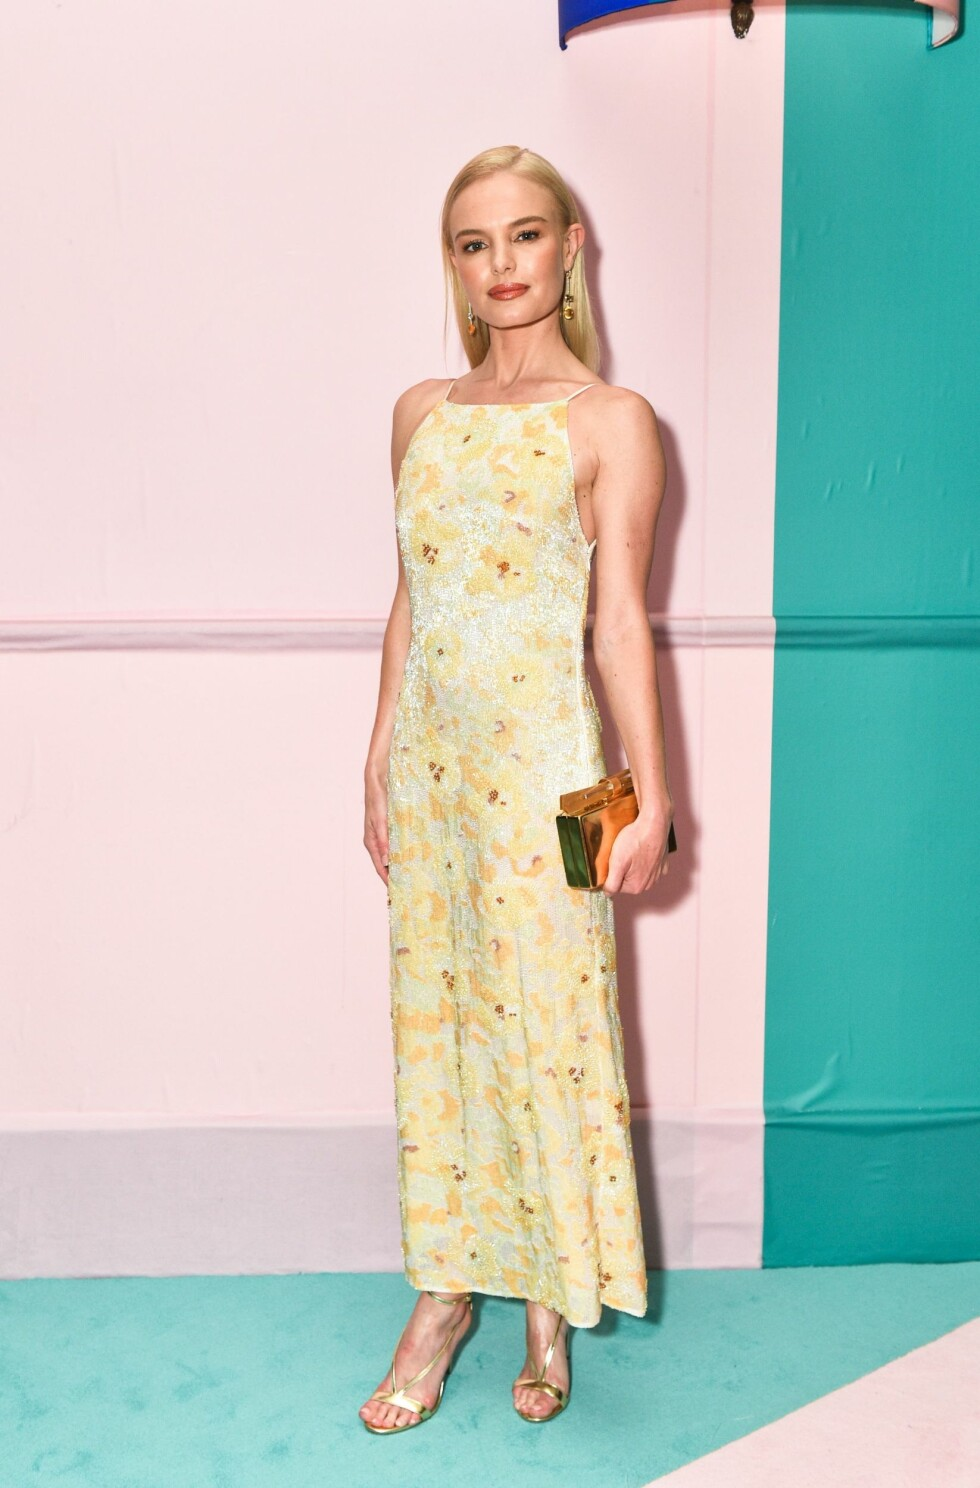 CFDA FASHION AWARDS: Kate Bosworth Foto: Shutterstock